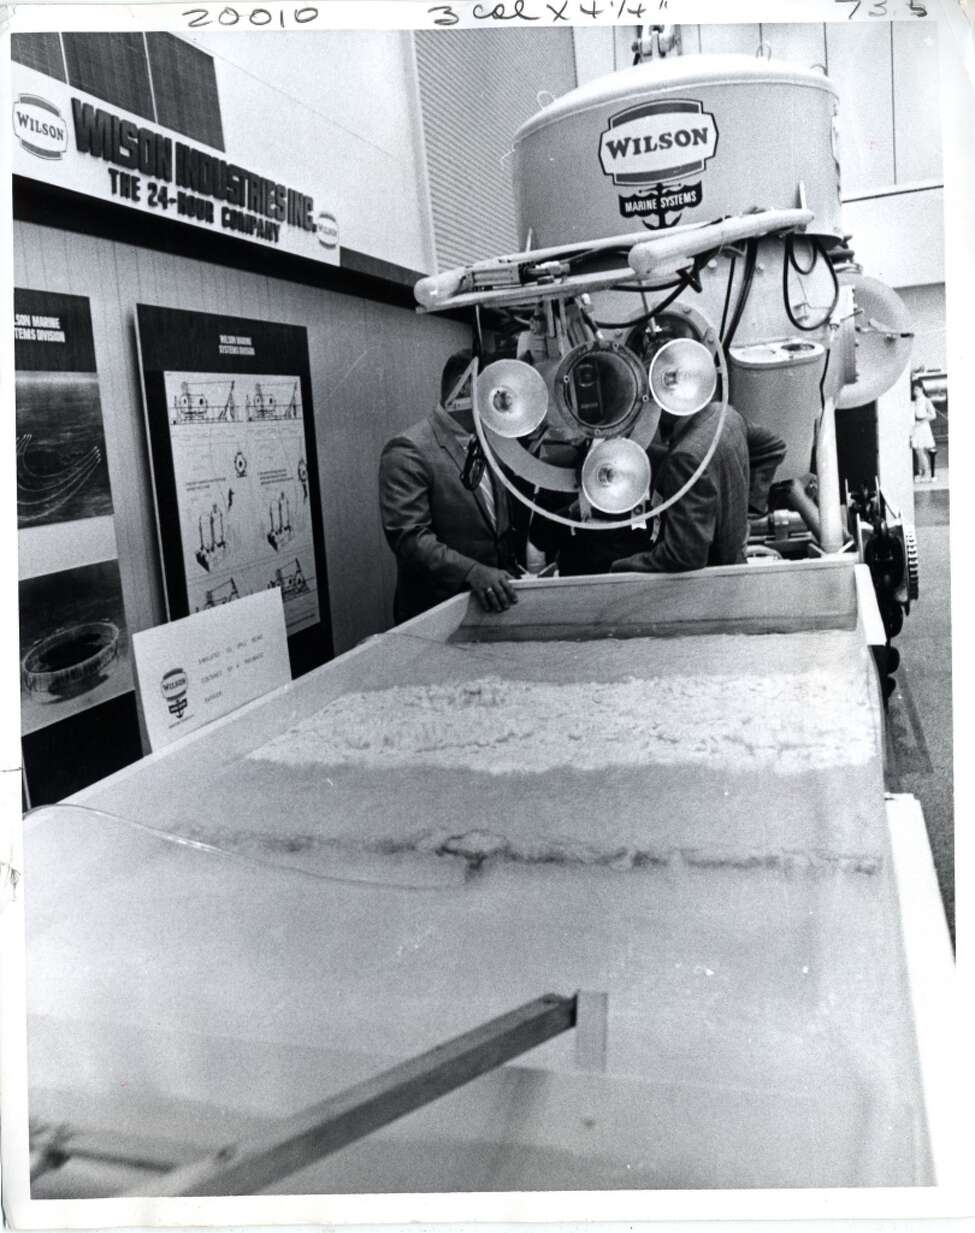 1970 - Wilson Marine Systems' Naucrates was on display at Offshore Technology Conference.